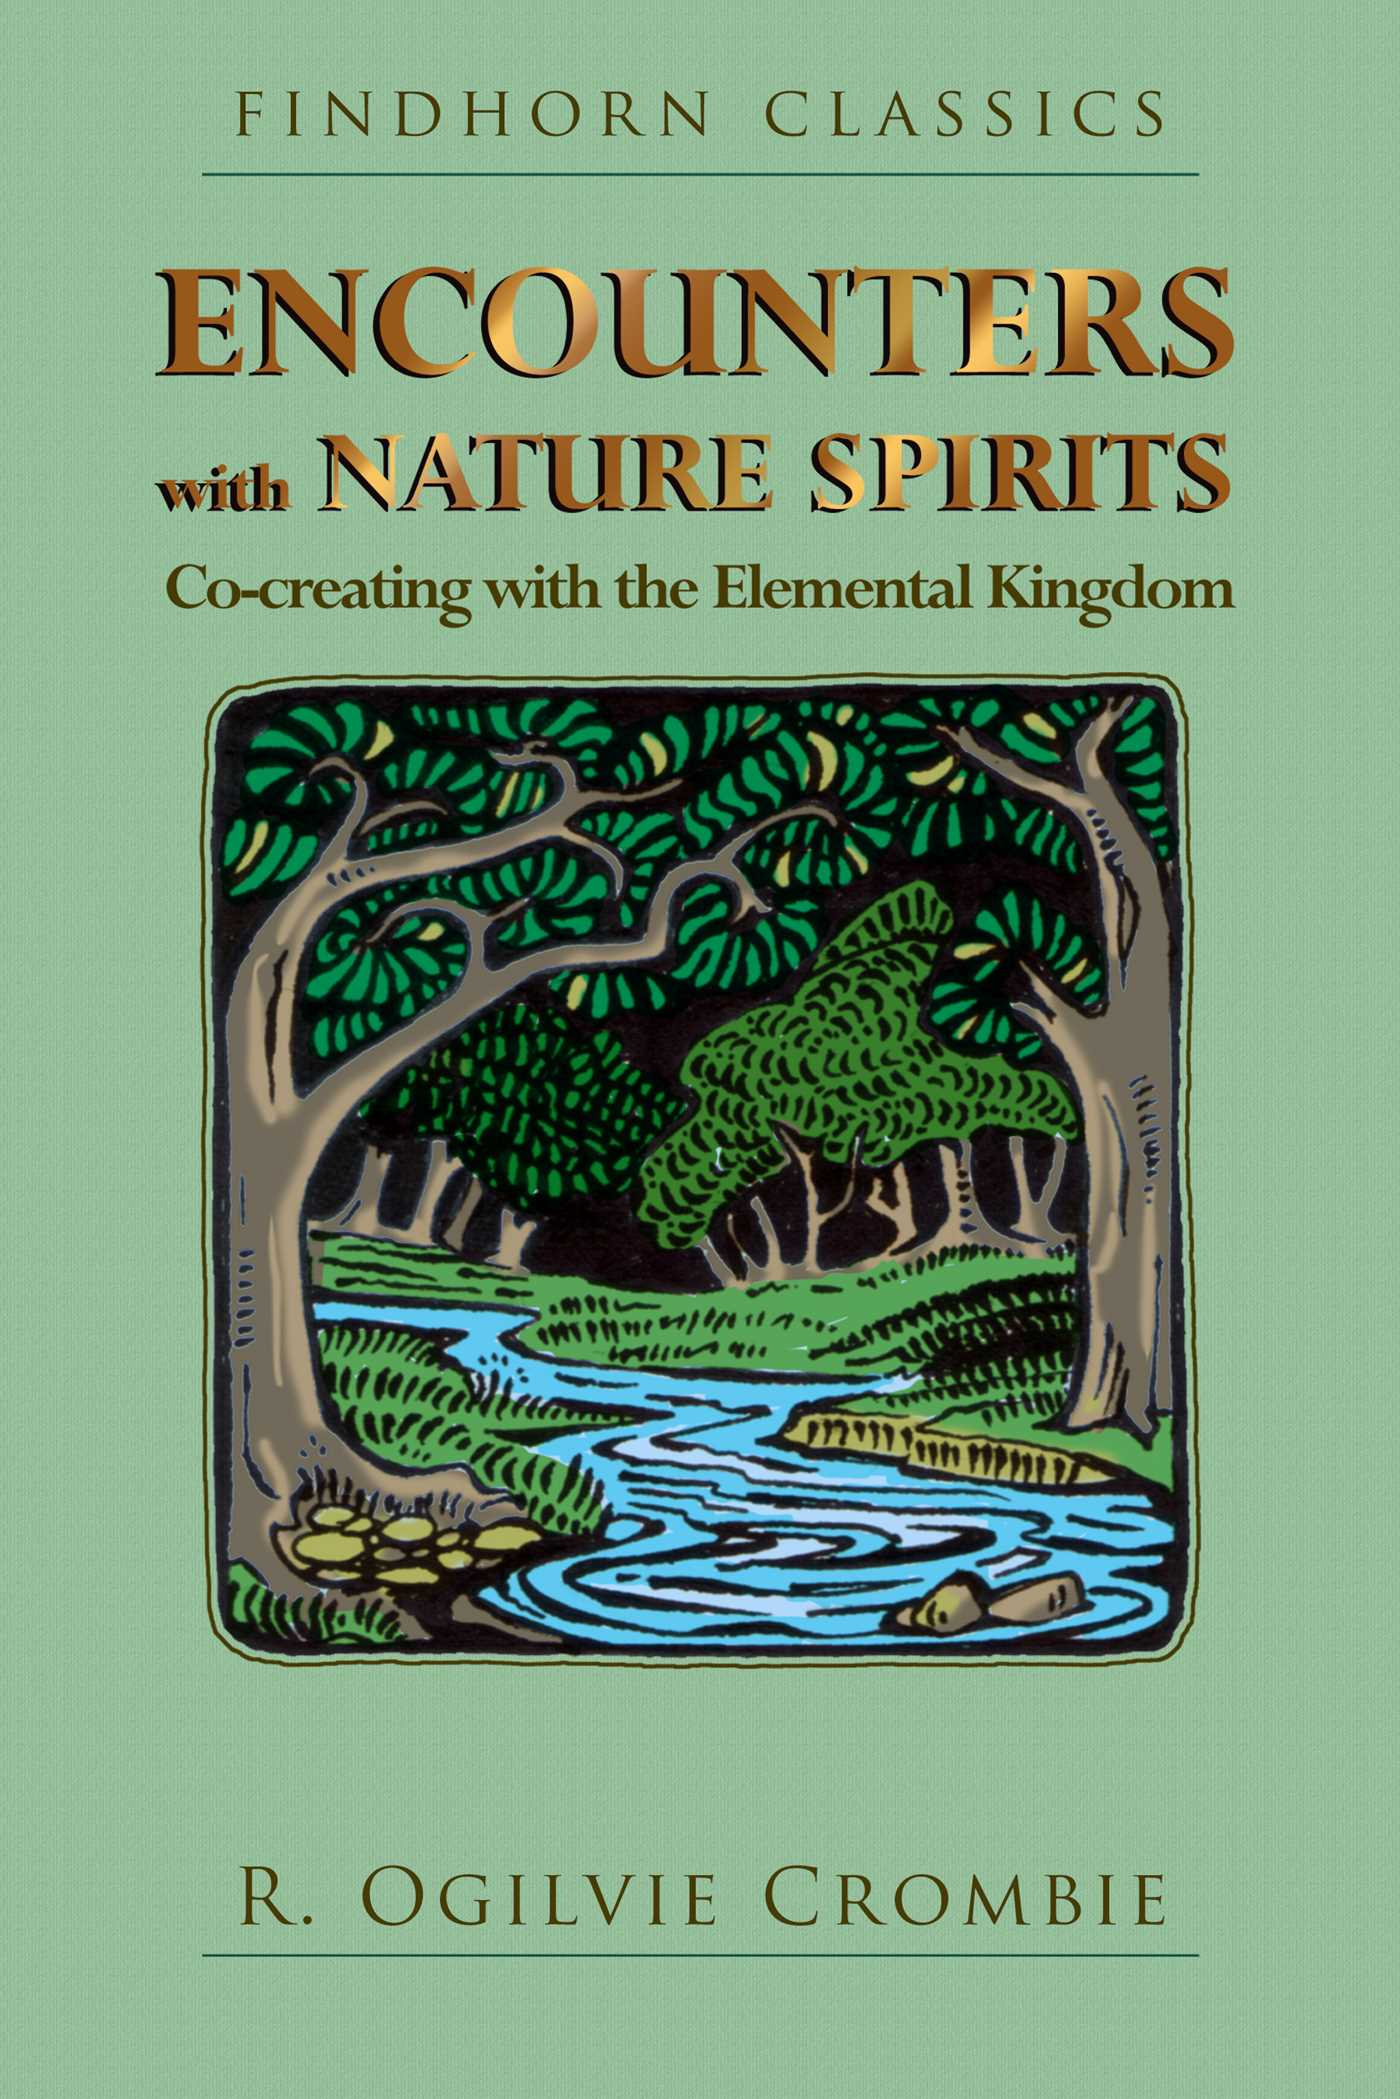 Encounters with nature spirits 9781620558379 hr